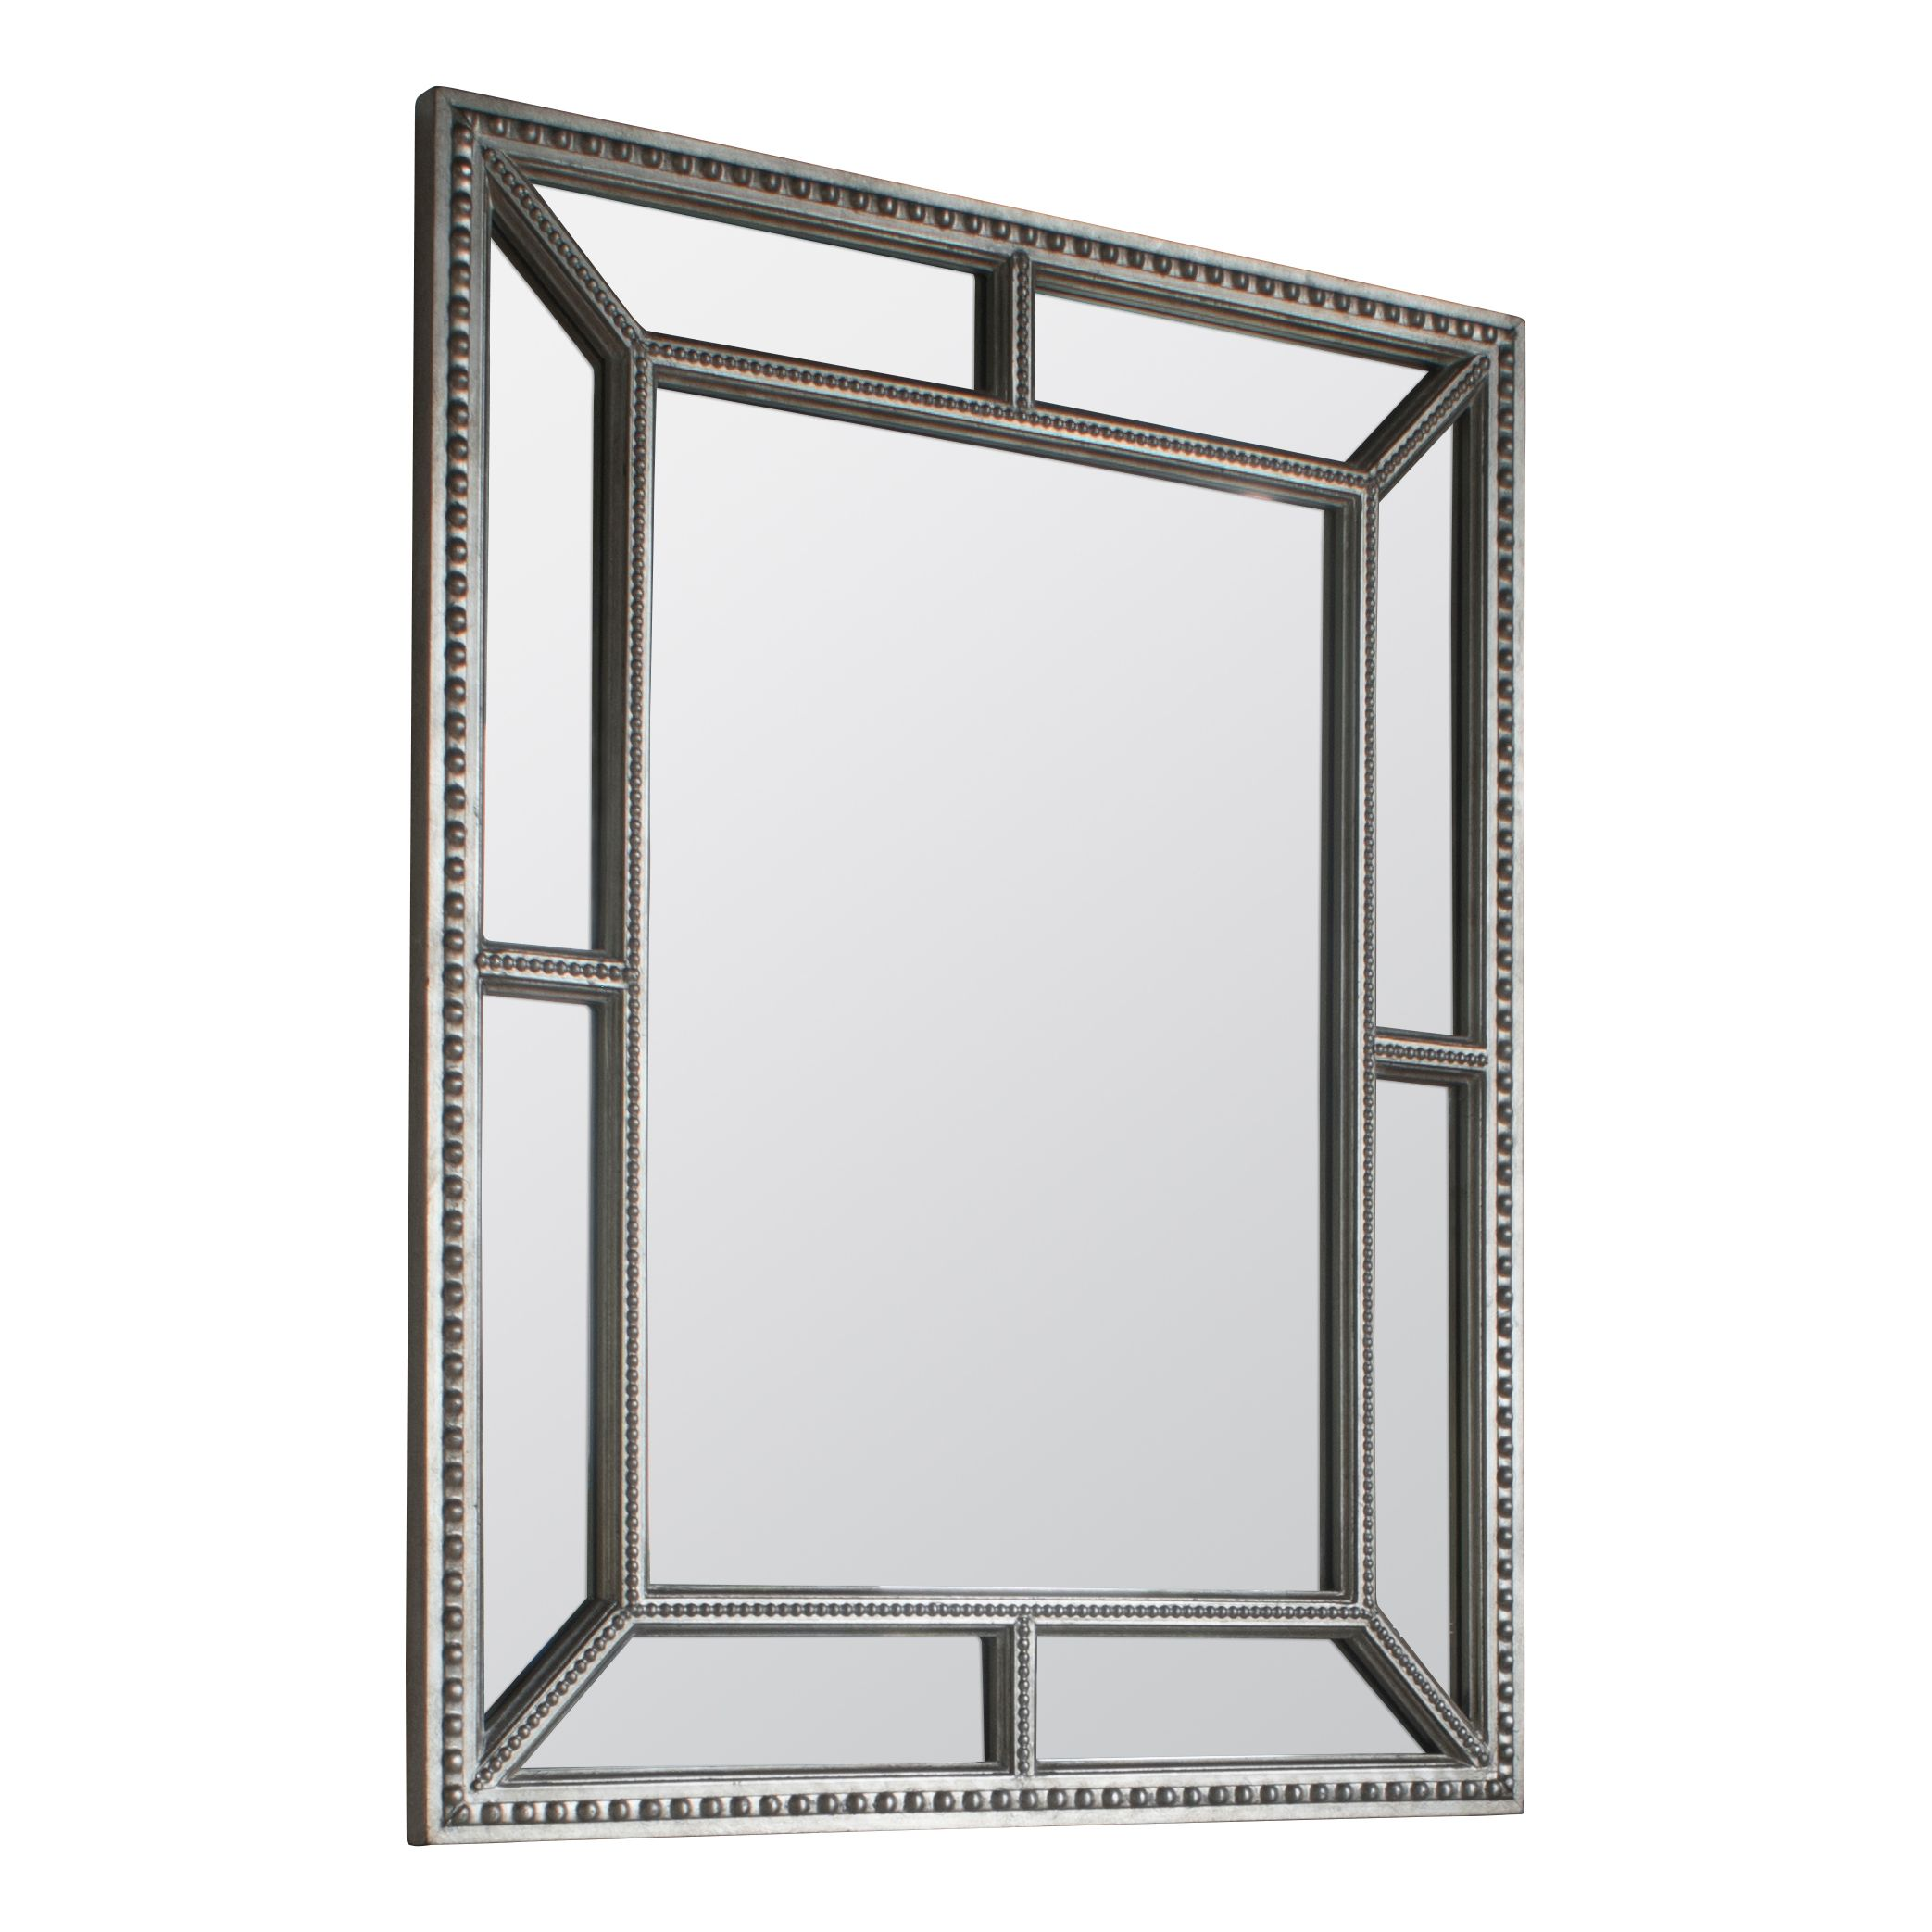 Buy Cheap Leaning Mirror Compare Products Prices For Best Uk Deals